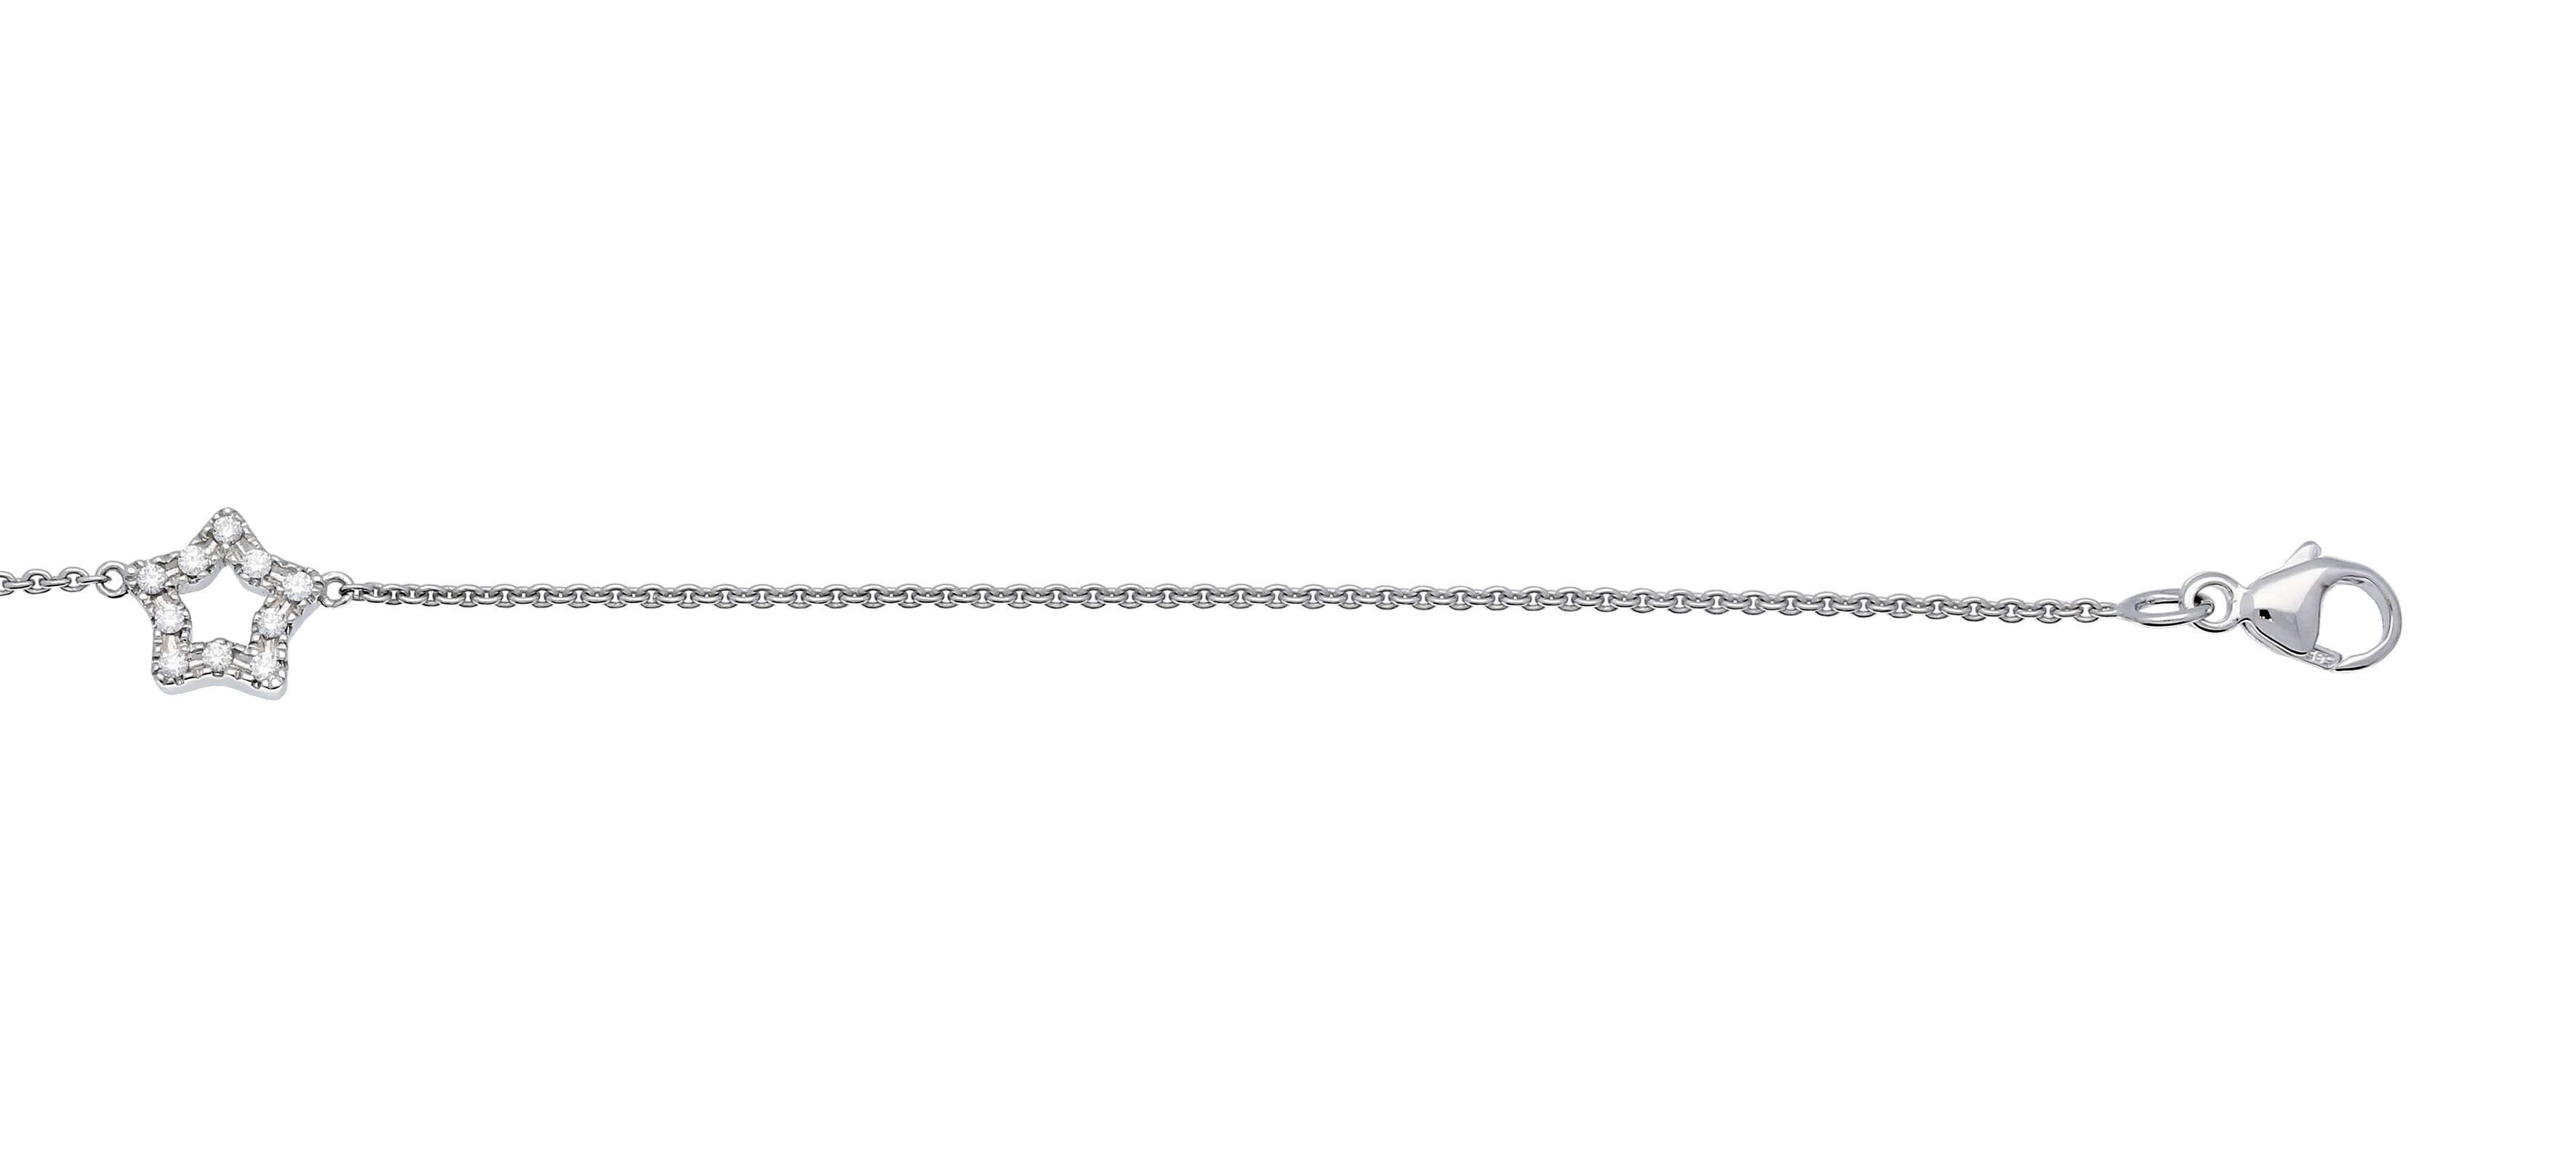 Glow Witgouden Armband 18.5 cm 'Ster' Diamant 0.08ct. 204.3015.18